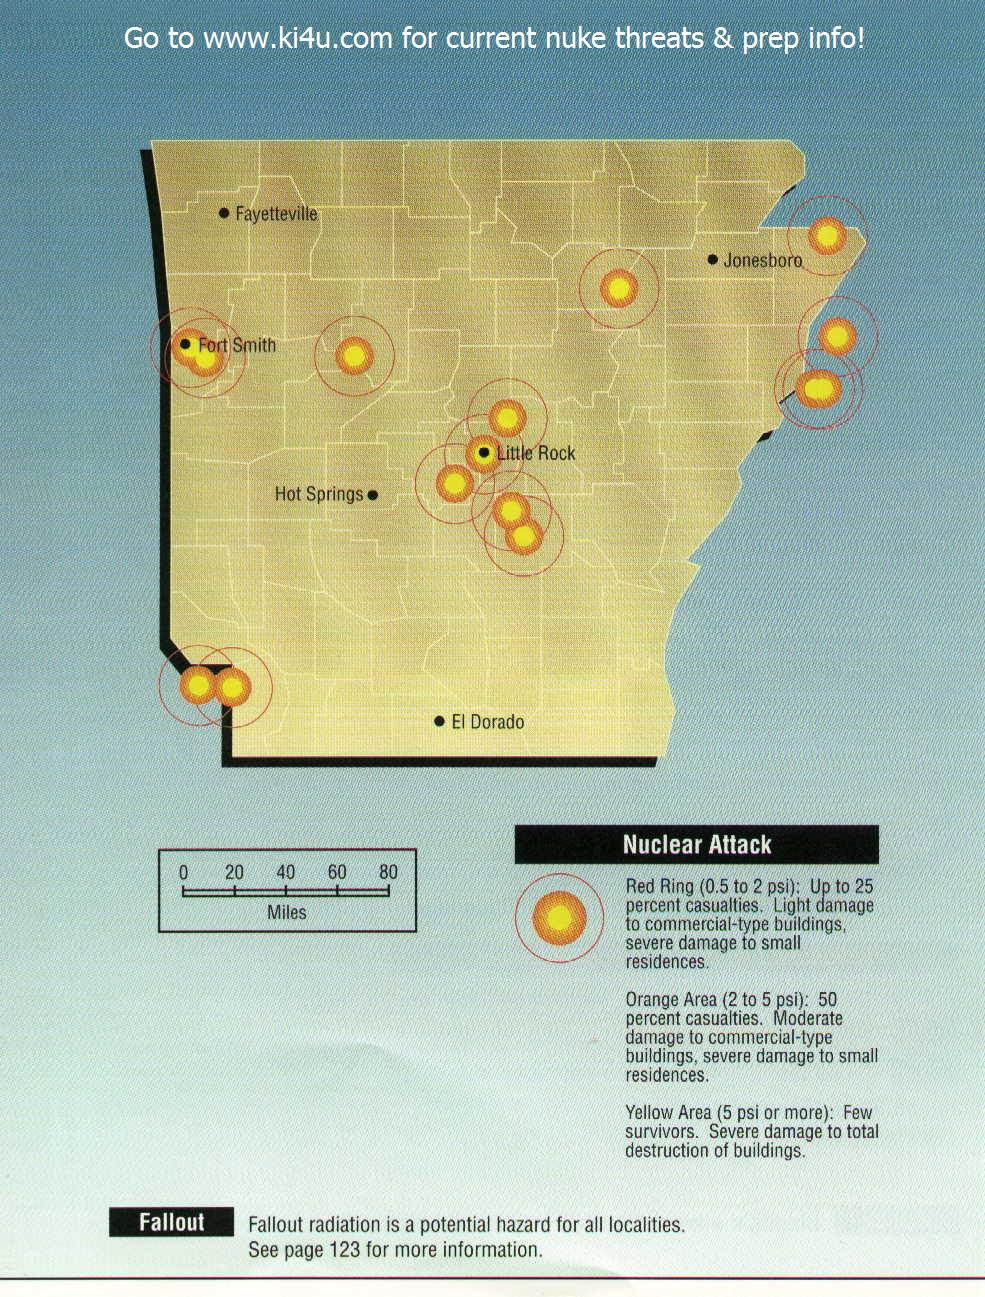 Nuclear War Fallout Shelter Survival Info for Arkansas with ...